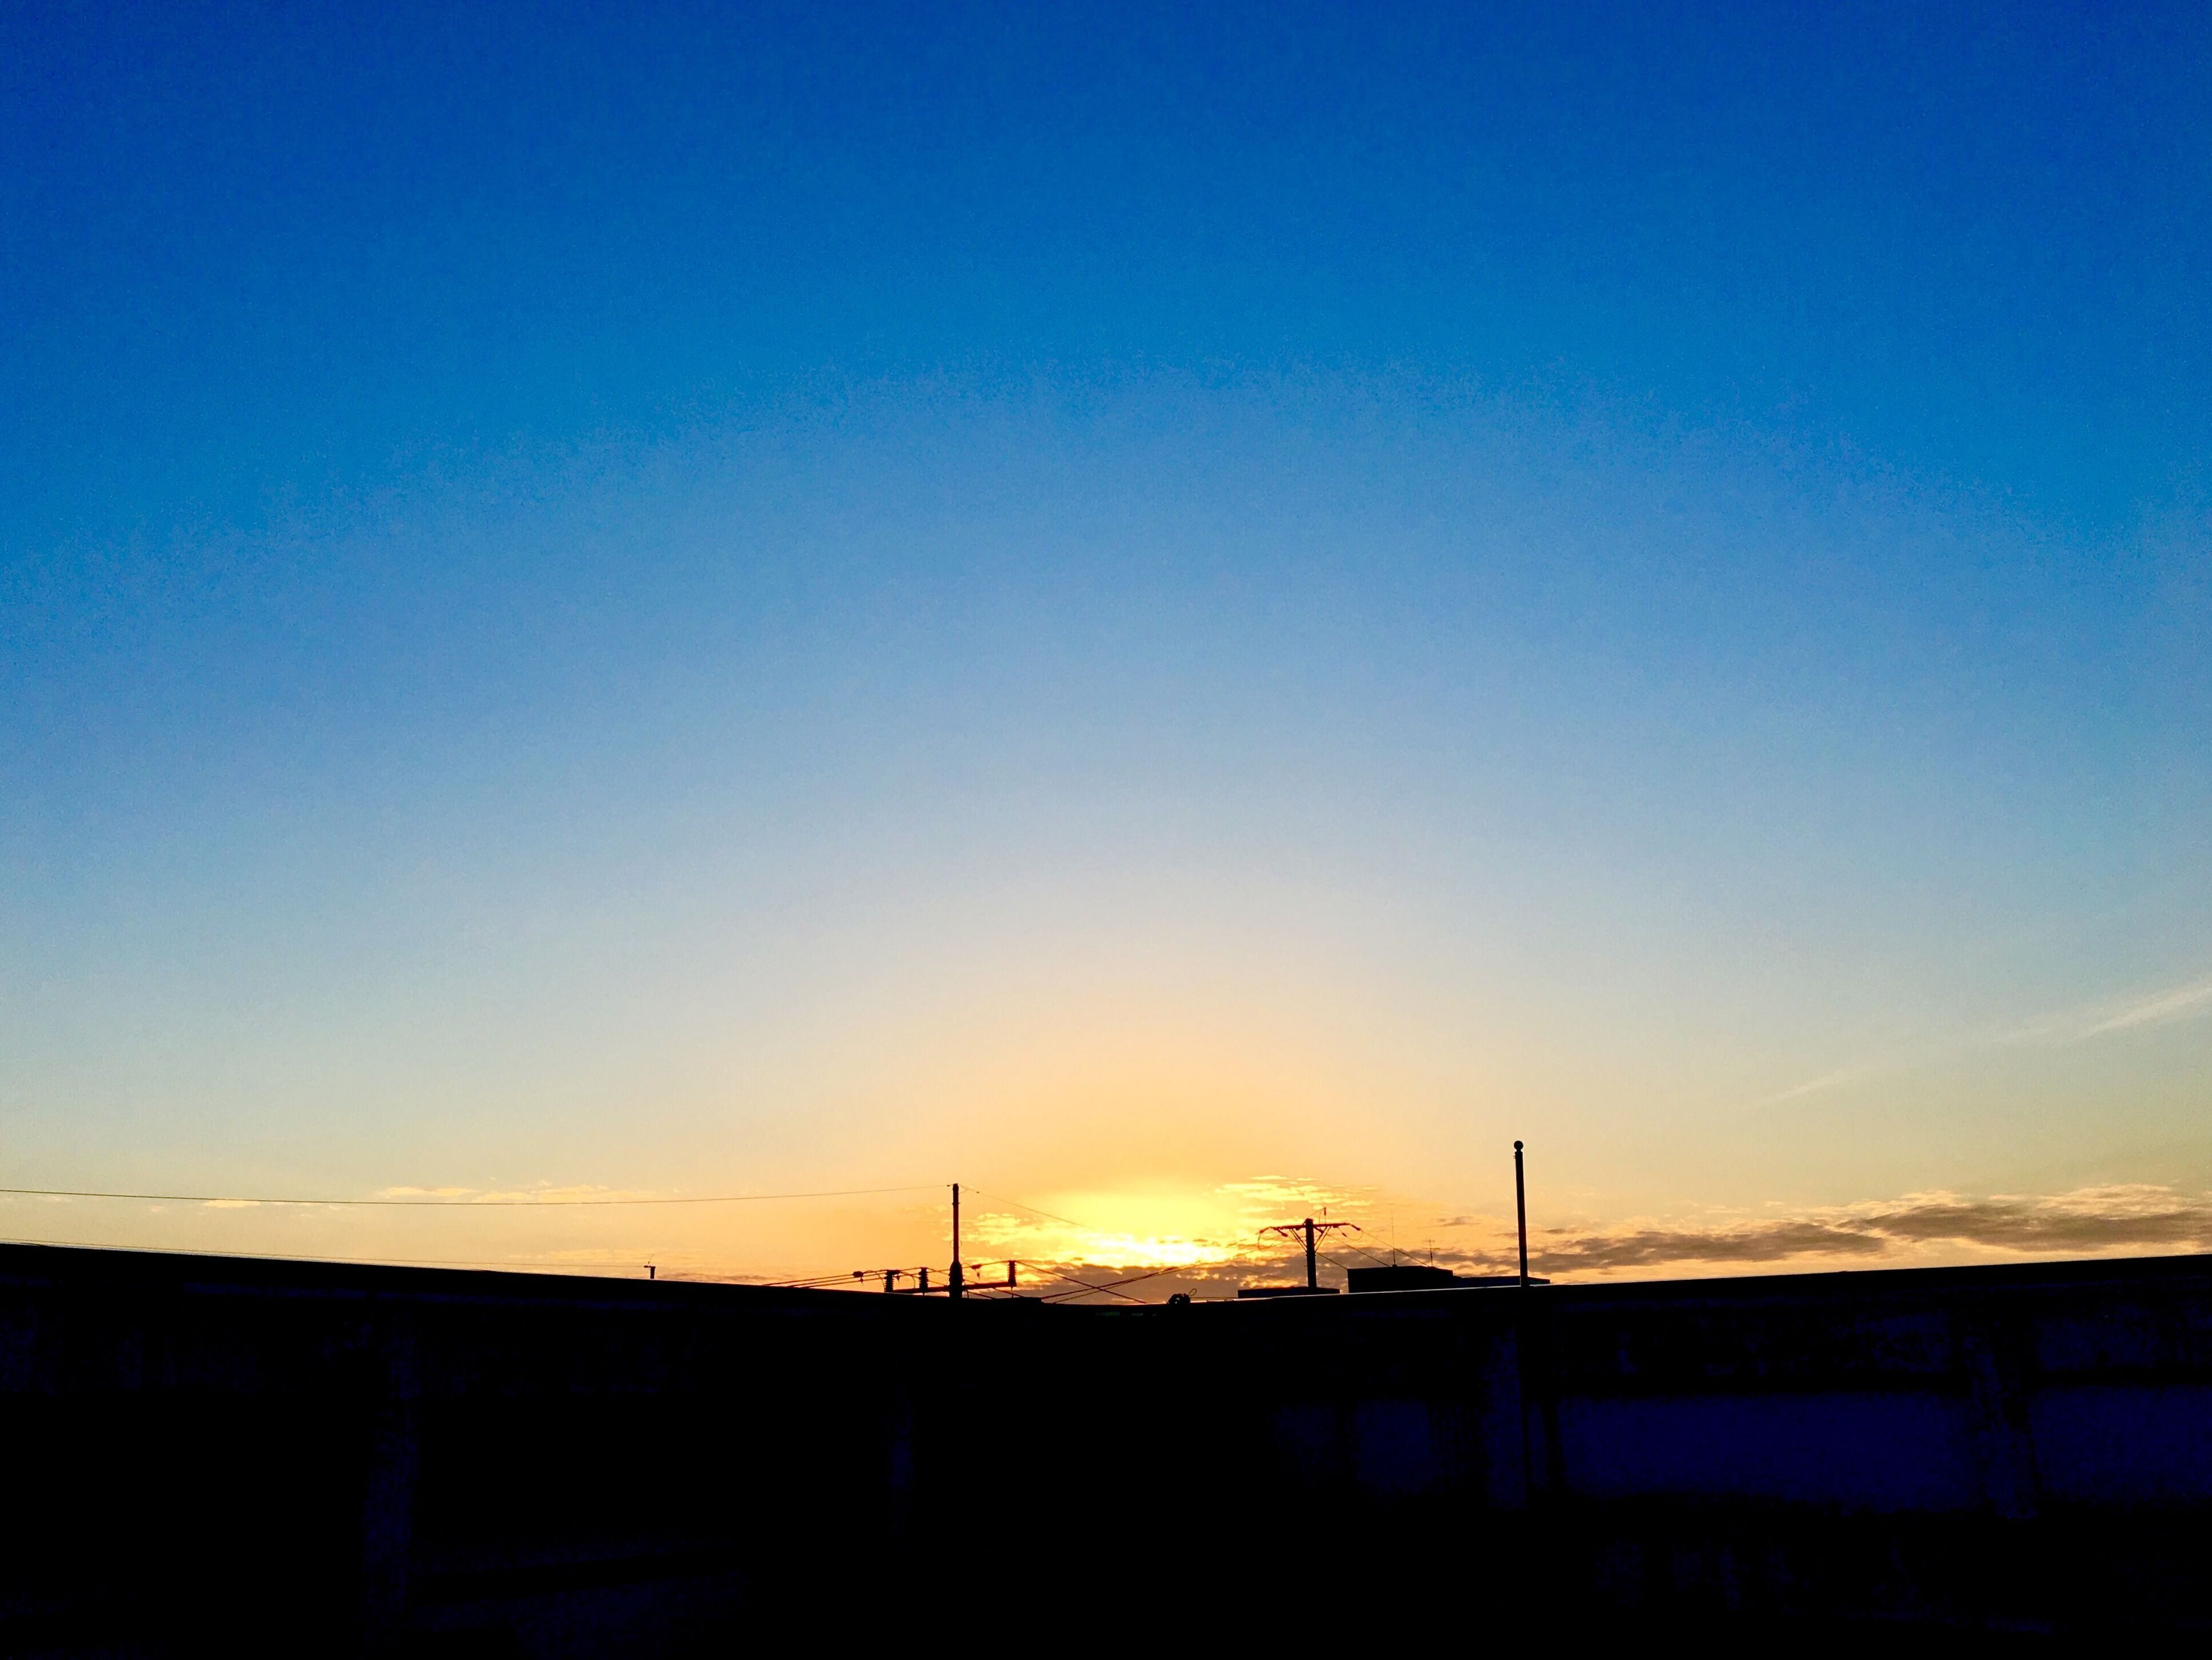 sunset, sky, built structure, clear sky, silhouette, no people, building exterior, nature, beauty in nature, outdoors, architecture, day